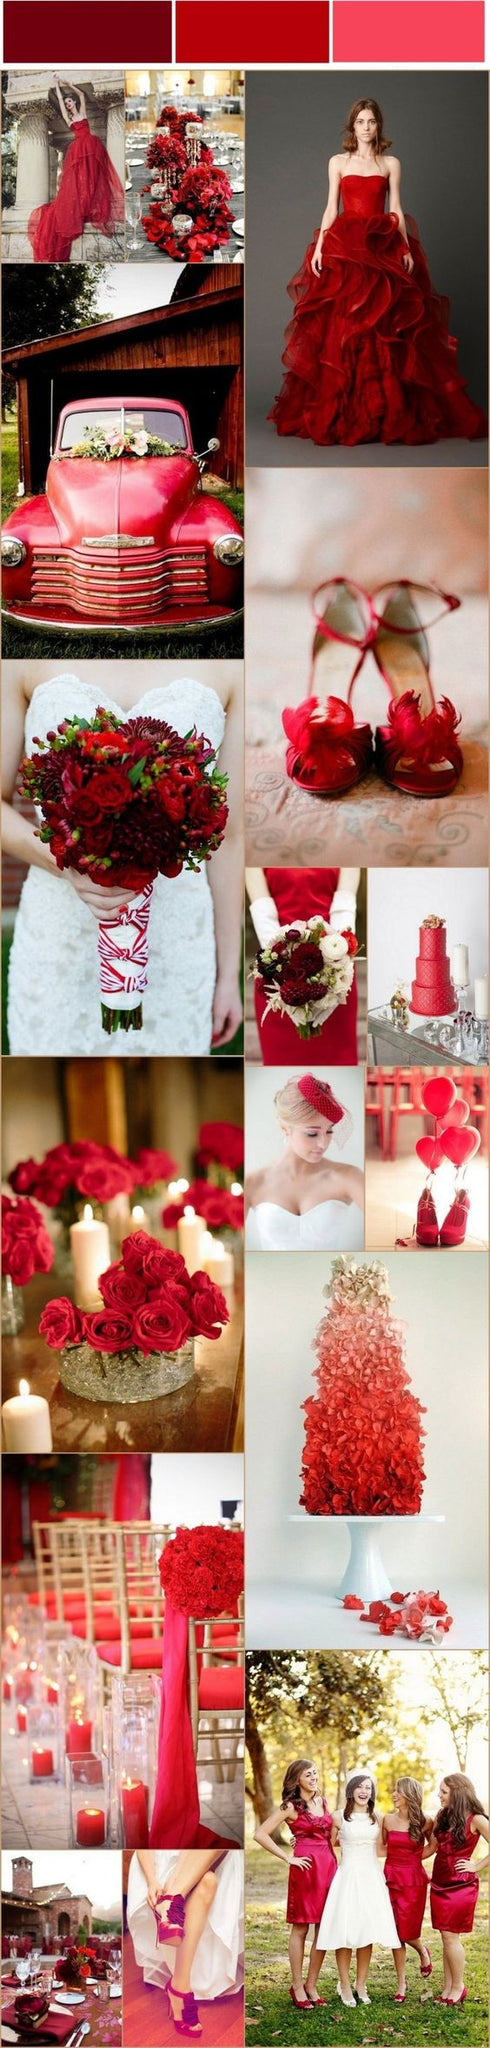 Red wedding inspiration